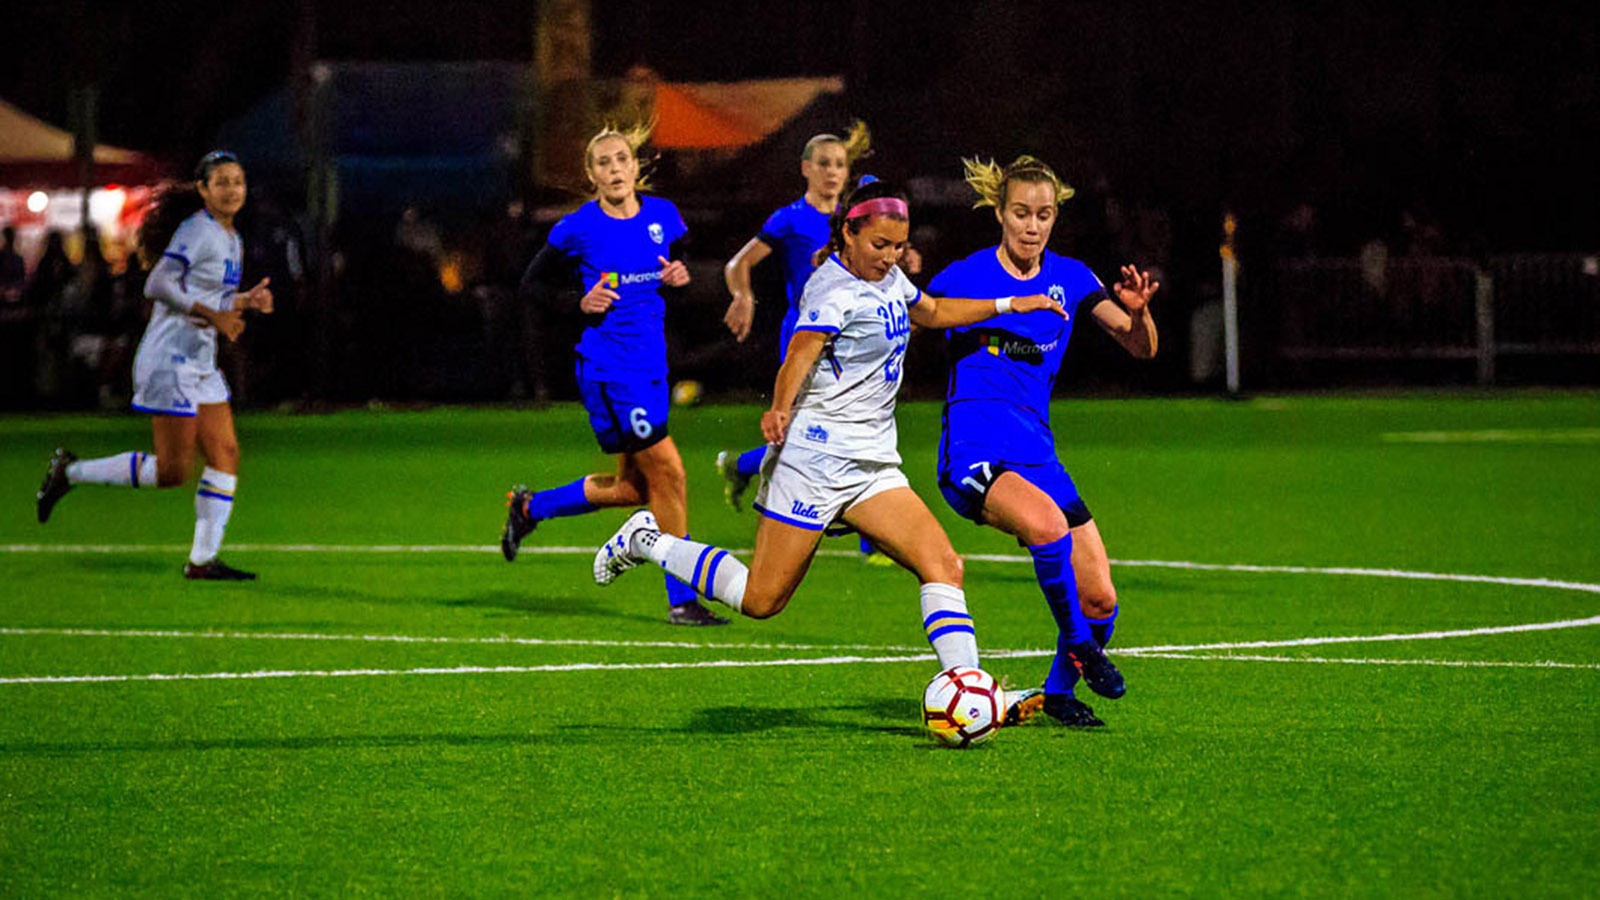 ef2a41ff3 UCLA-Reign FC Match Highlights Spring Schedule - UCLA